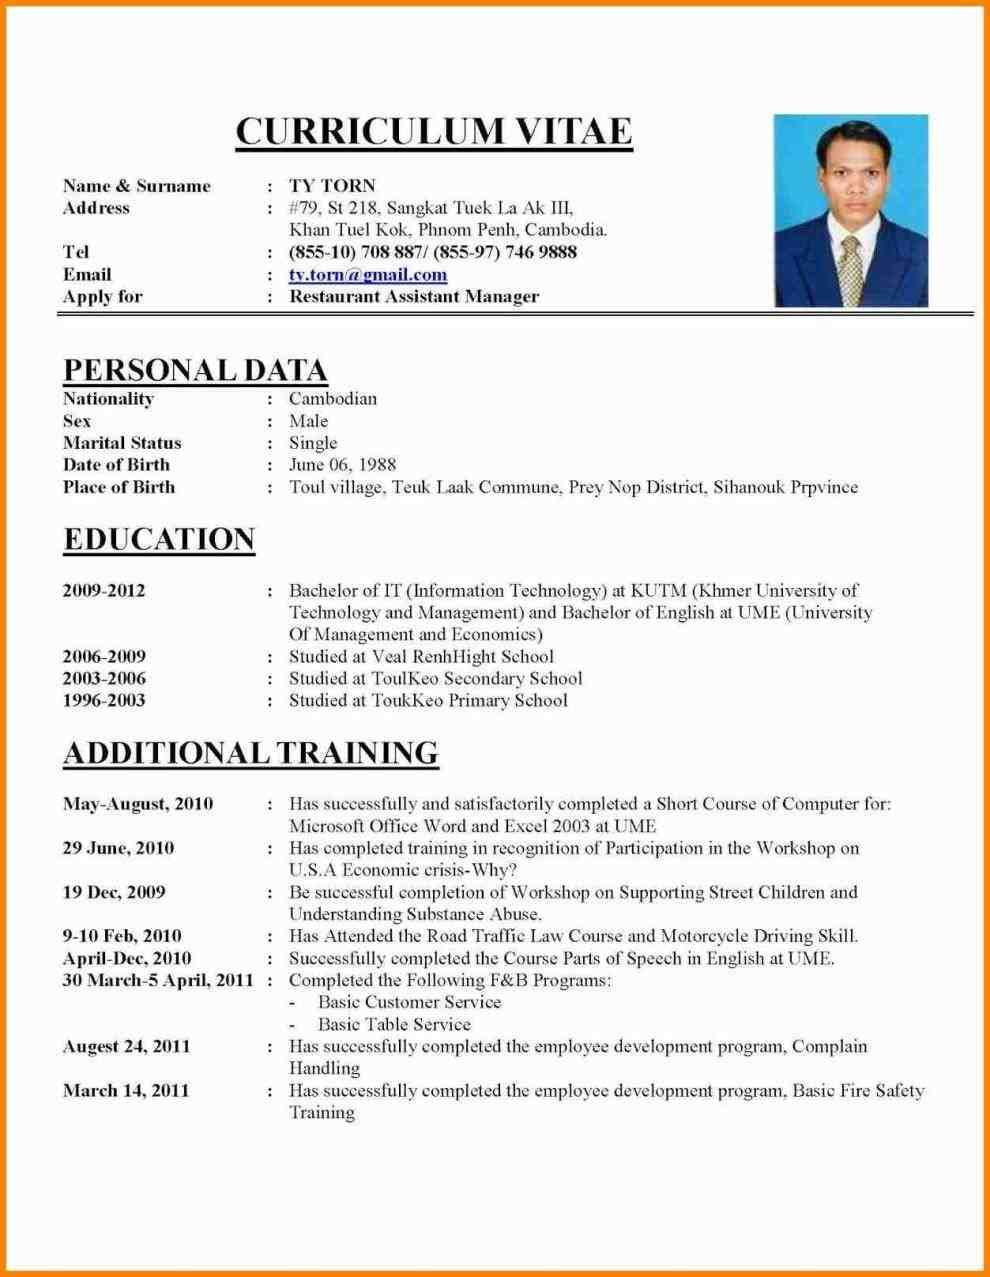 Cv Examples For Job Application | Pend Board | Pinterest | Cv ...